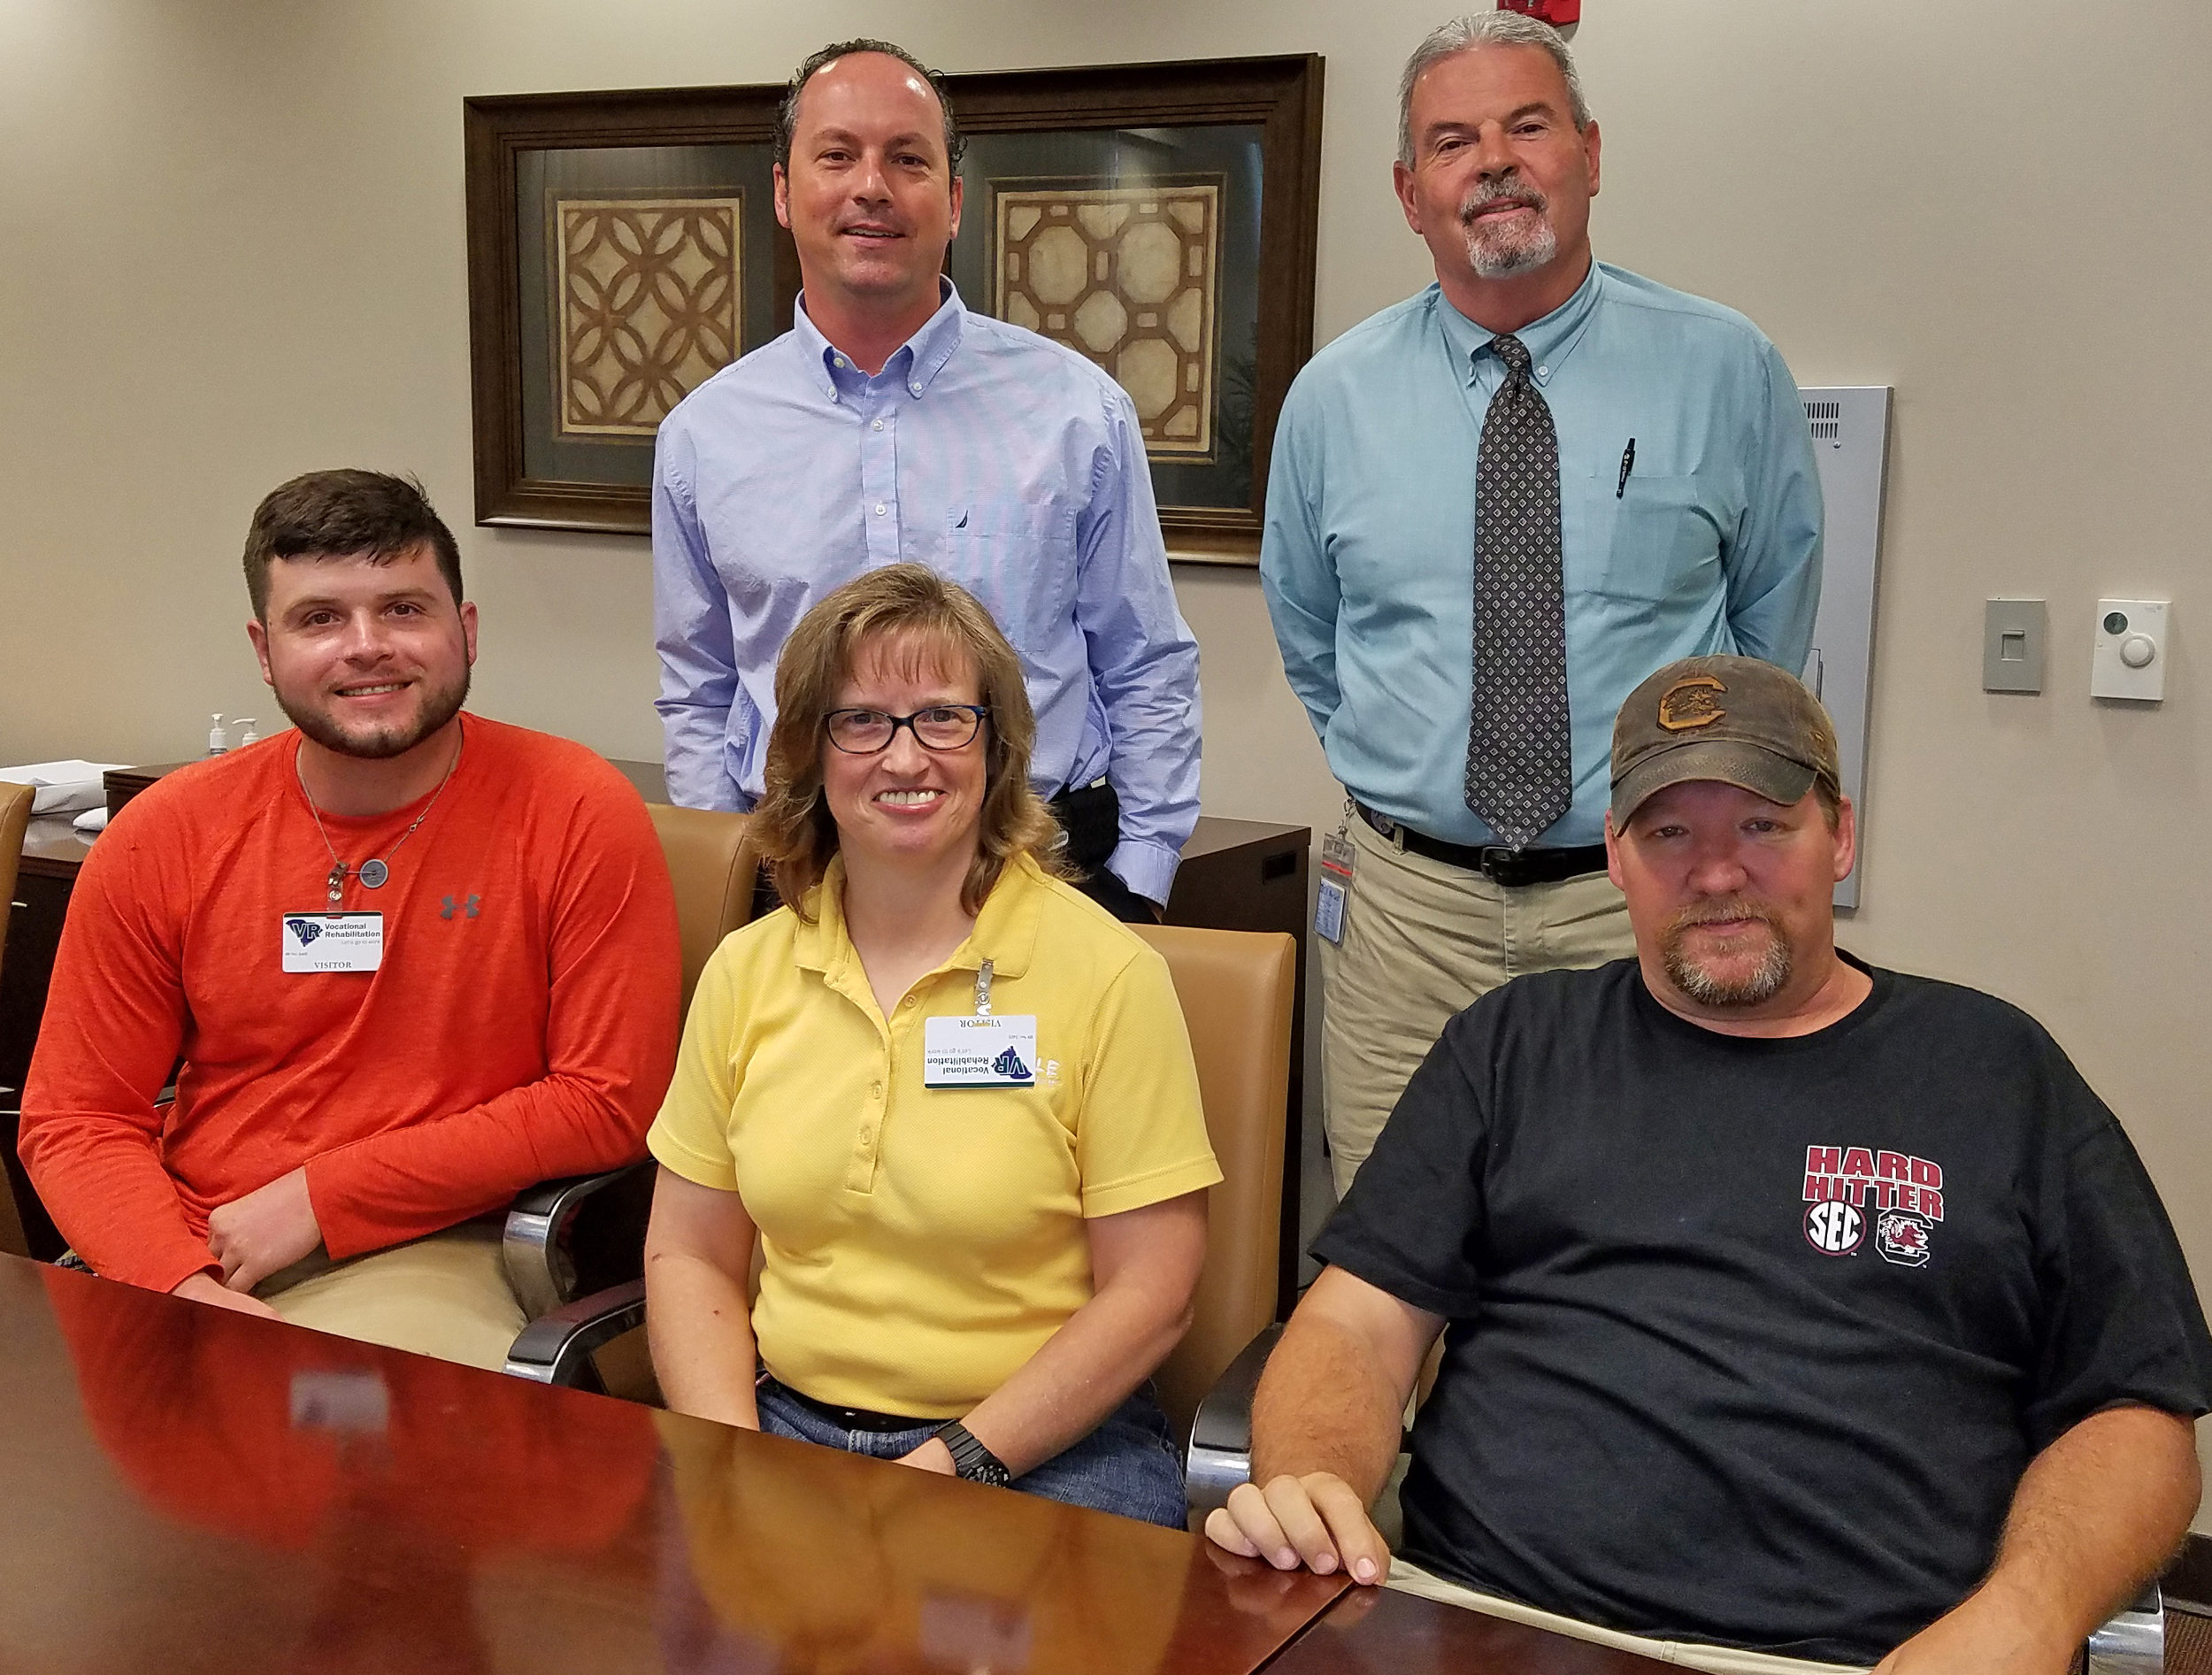 Front row, left to right: Former clients Justin Smith, Melanie Miller and Terry Manus are employed by Sloan Construction in the Upstate. Back row: Ryan Skinner, VR Business Development Specialist and Jay Weisner, Center Manager and OSHA 10 Trainer.